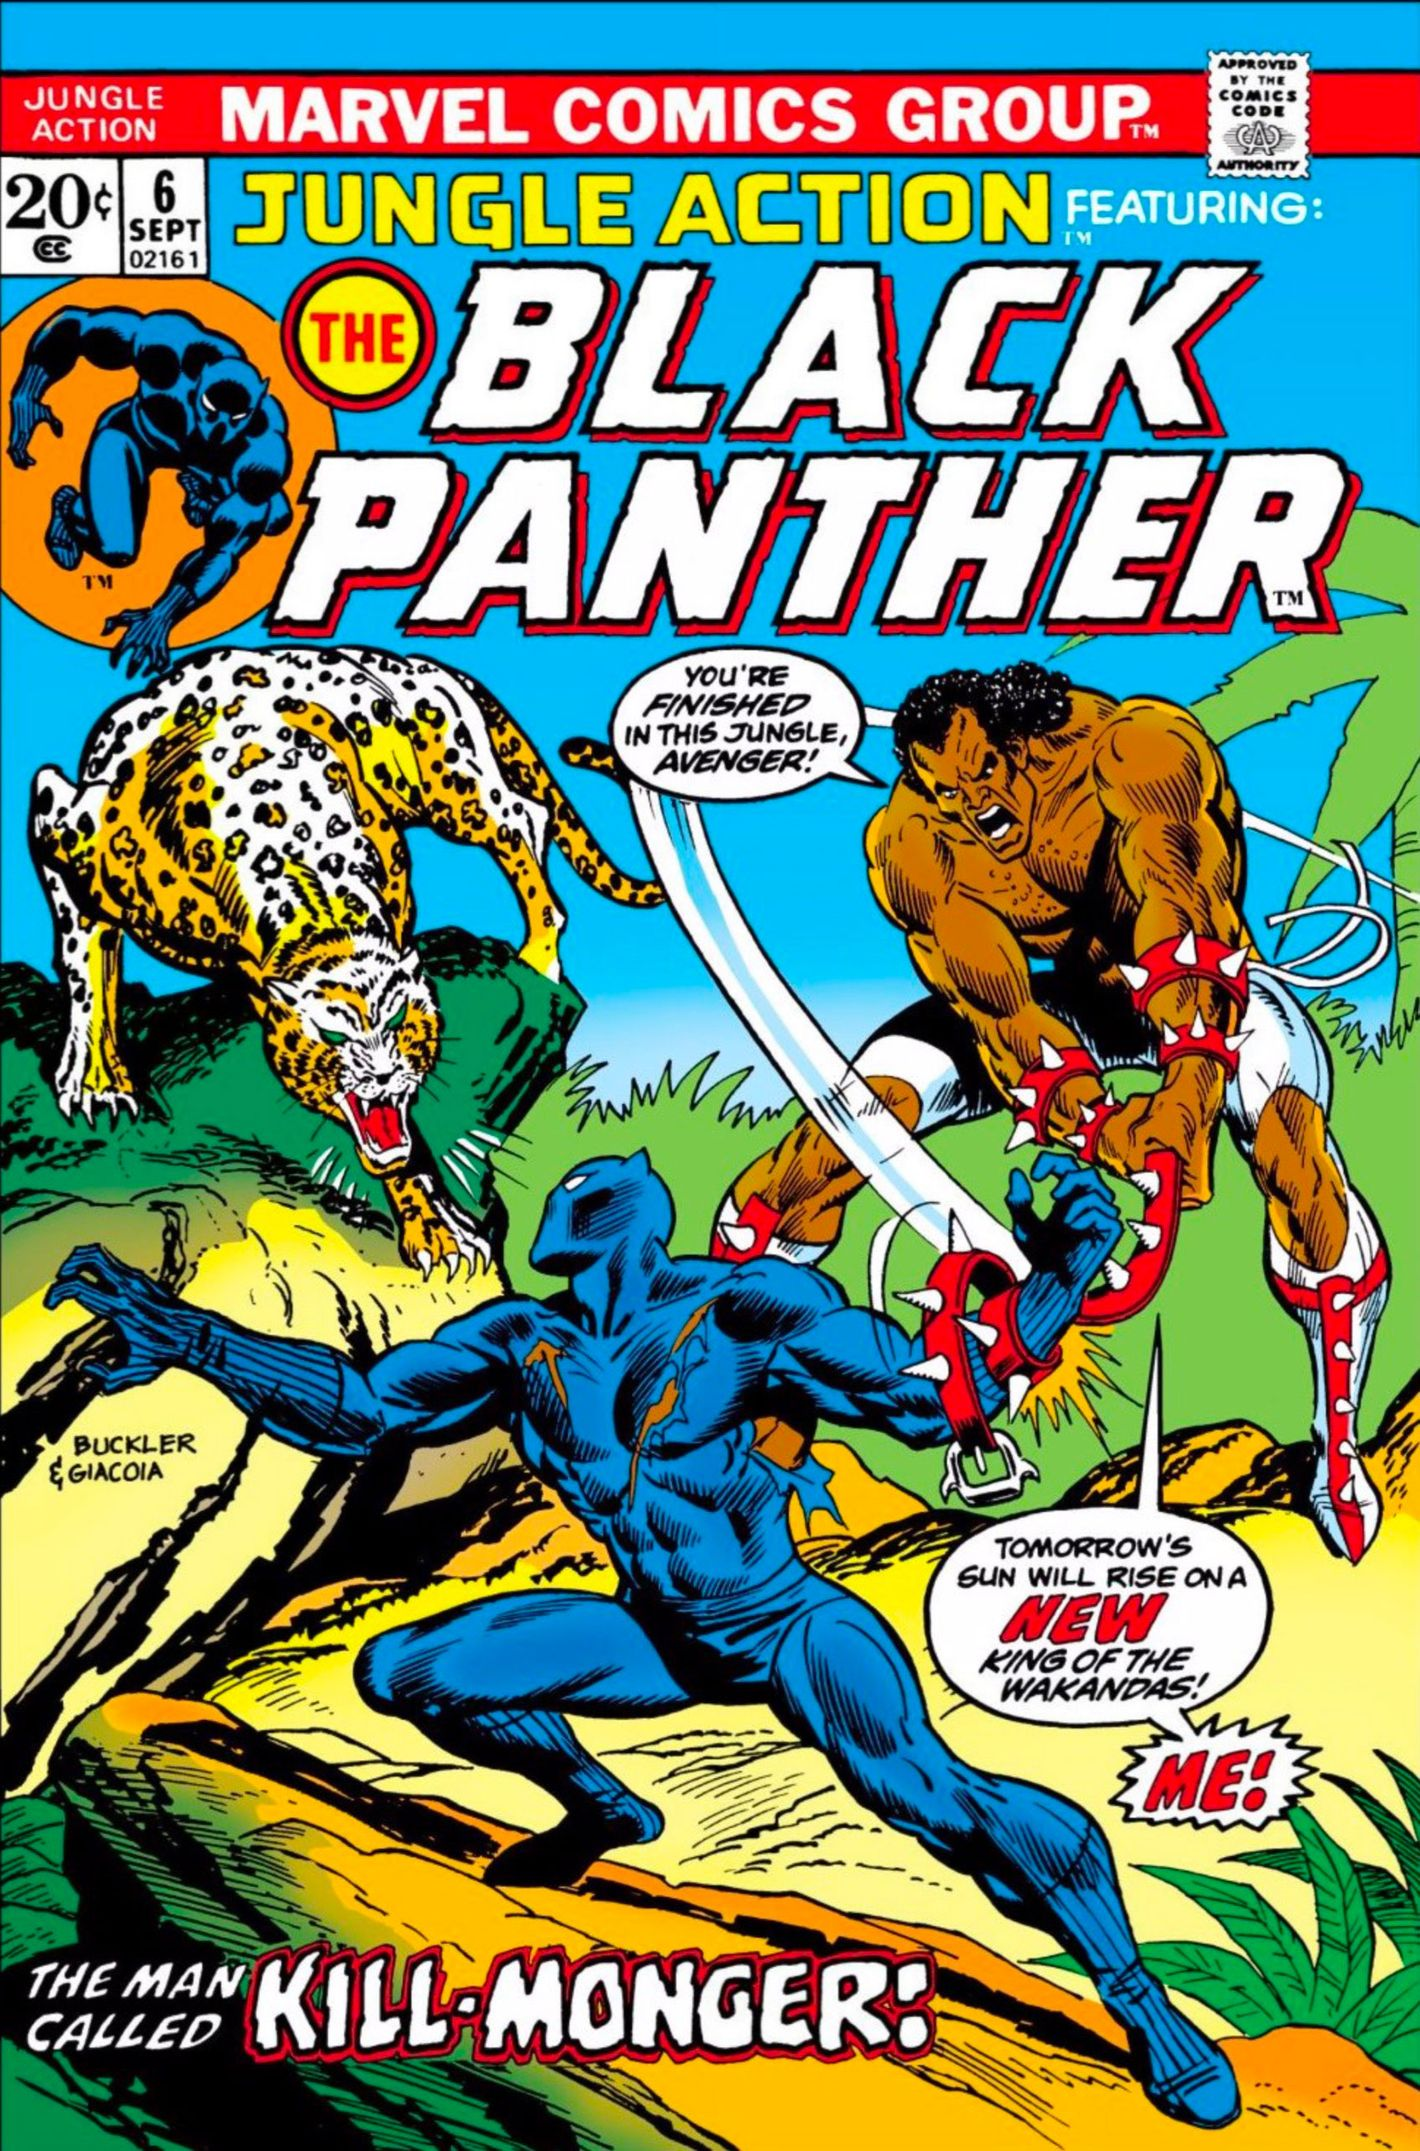 Inside The 1970s Comics Story That Reinvented Black Panther